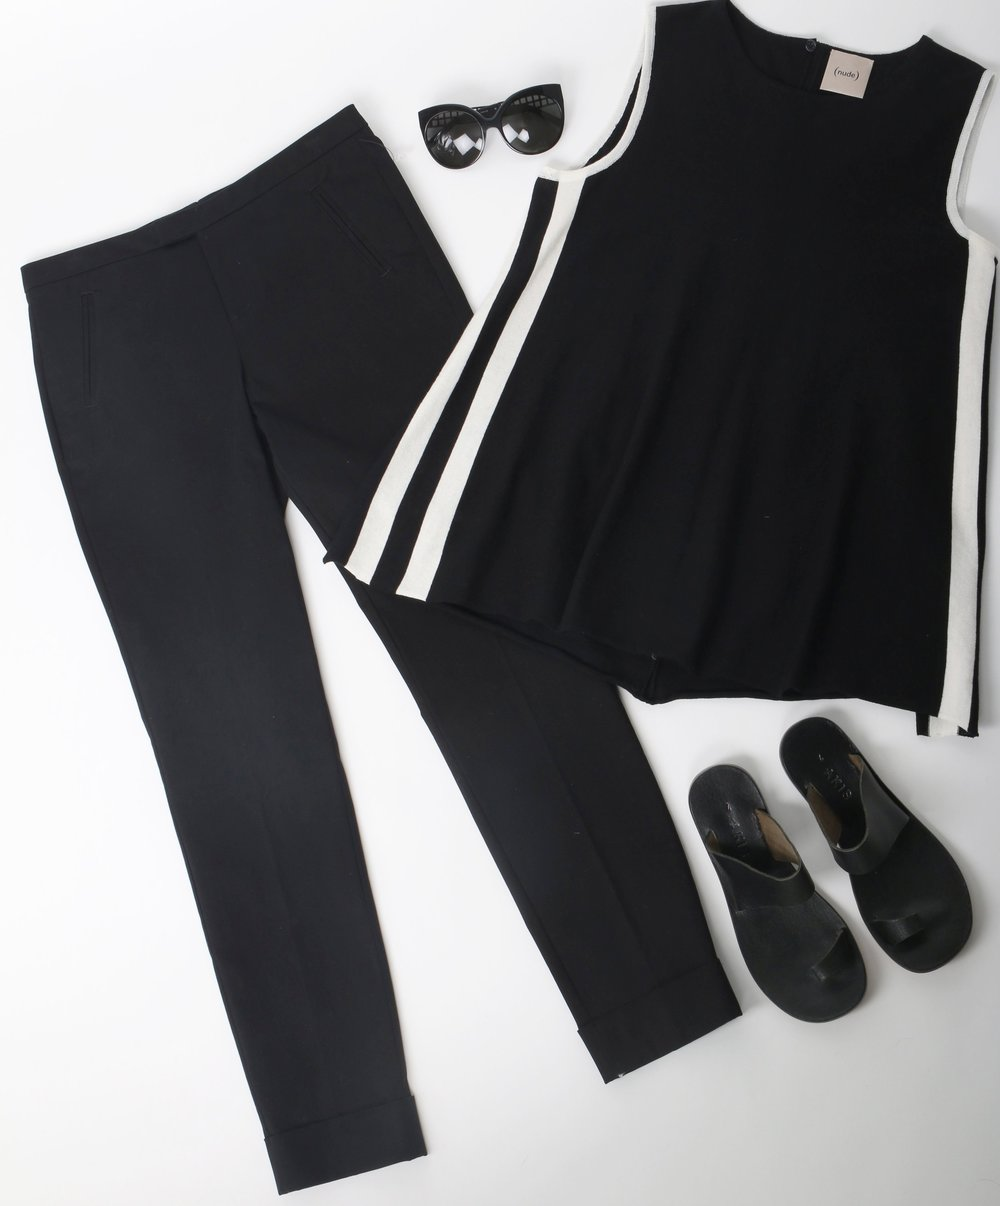 Clean and Classic Black & White:   Akis   Sandals,   ATM   Pants,   (nude)   Top,   Linda Farrow   Sunglasses